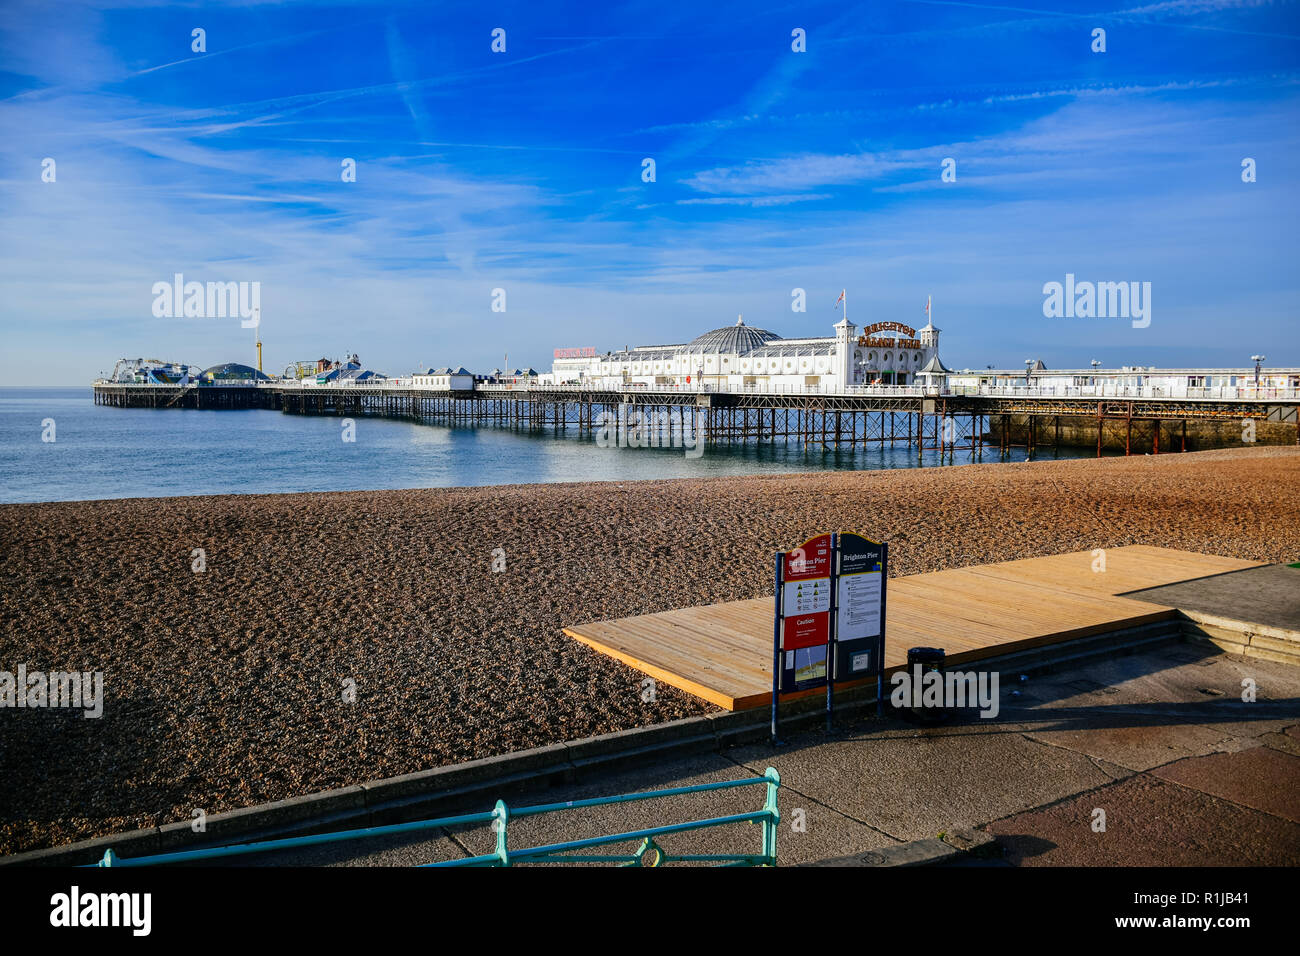 Scenic view of Brighton Palace Pier, one of the most popular tourist attraction in the seaside town of Brighton in England, United Kingdom Stock Photo